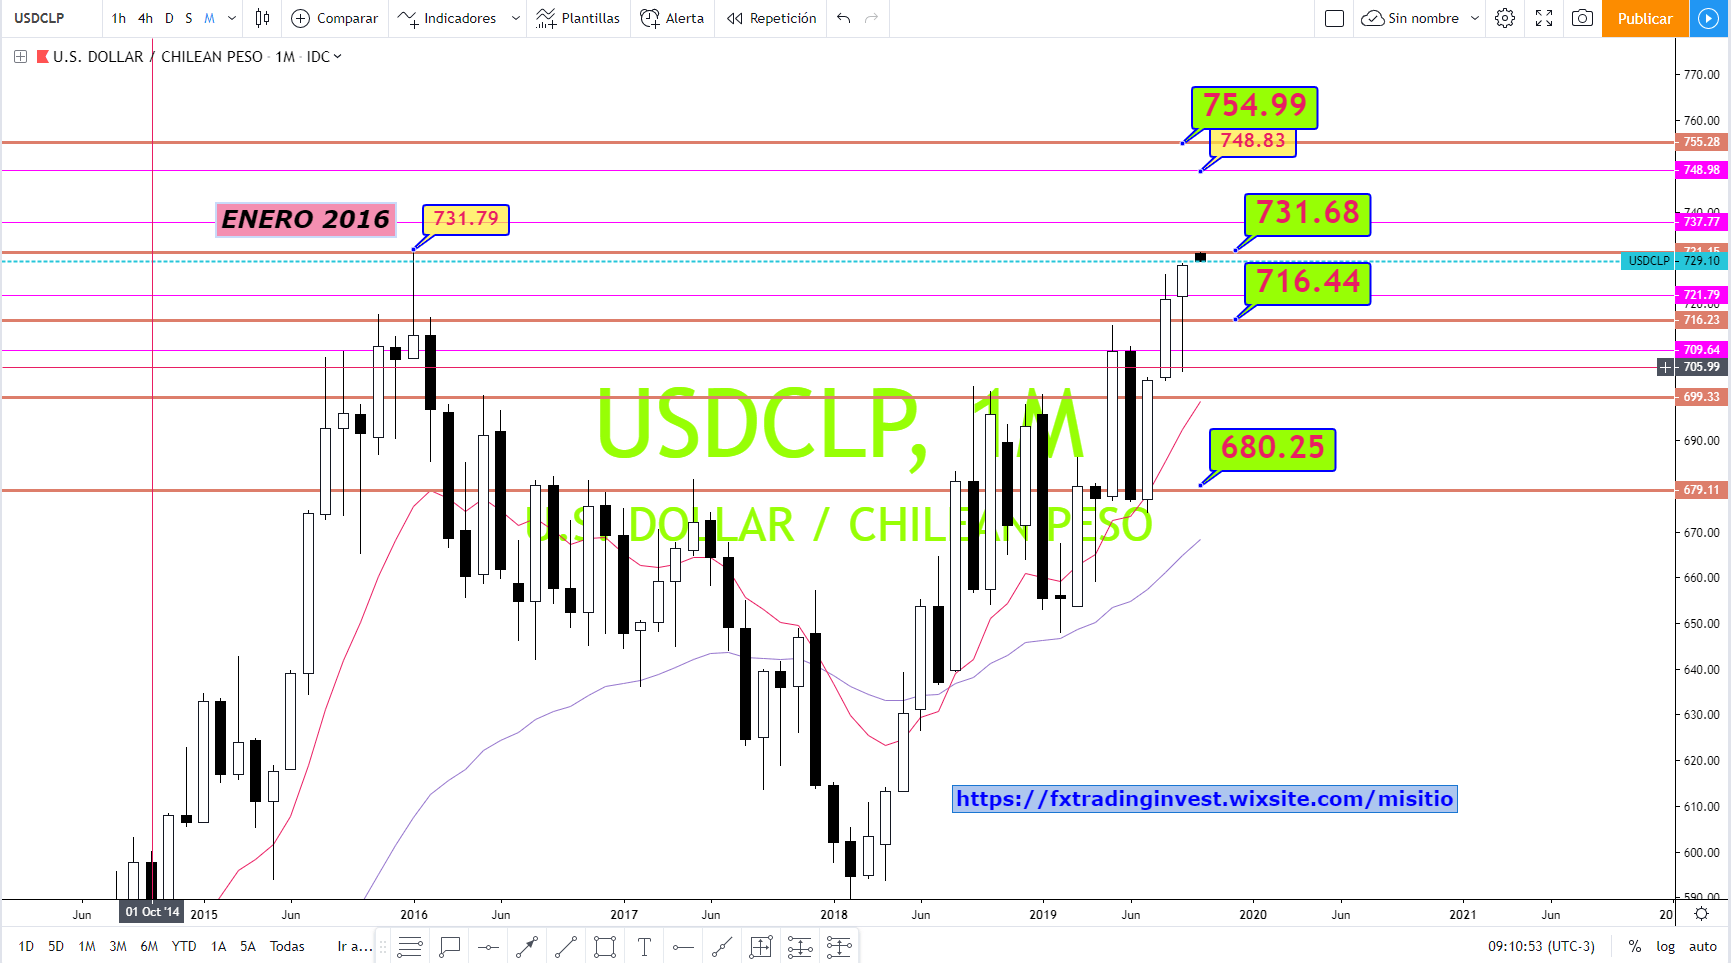 USDCLP